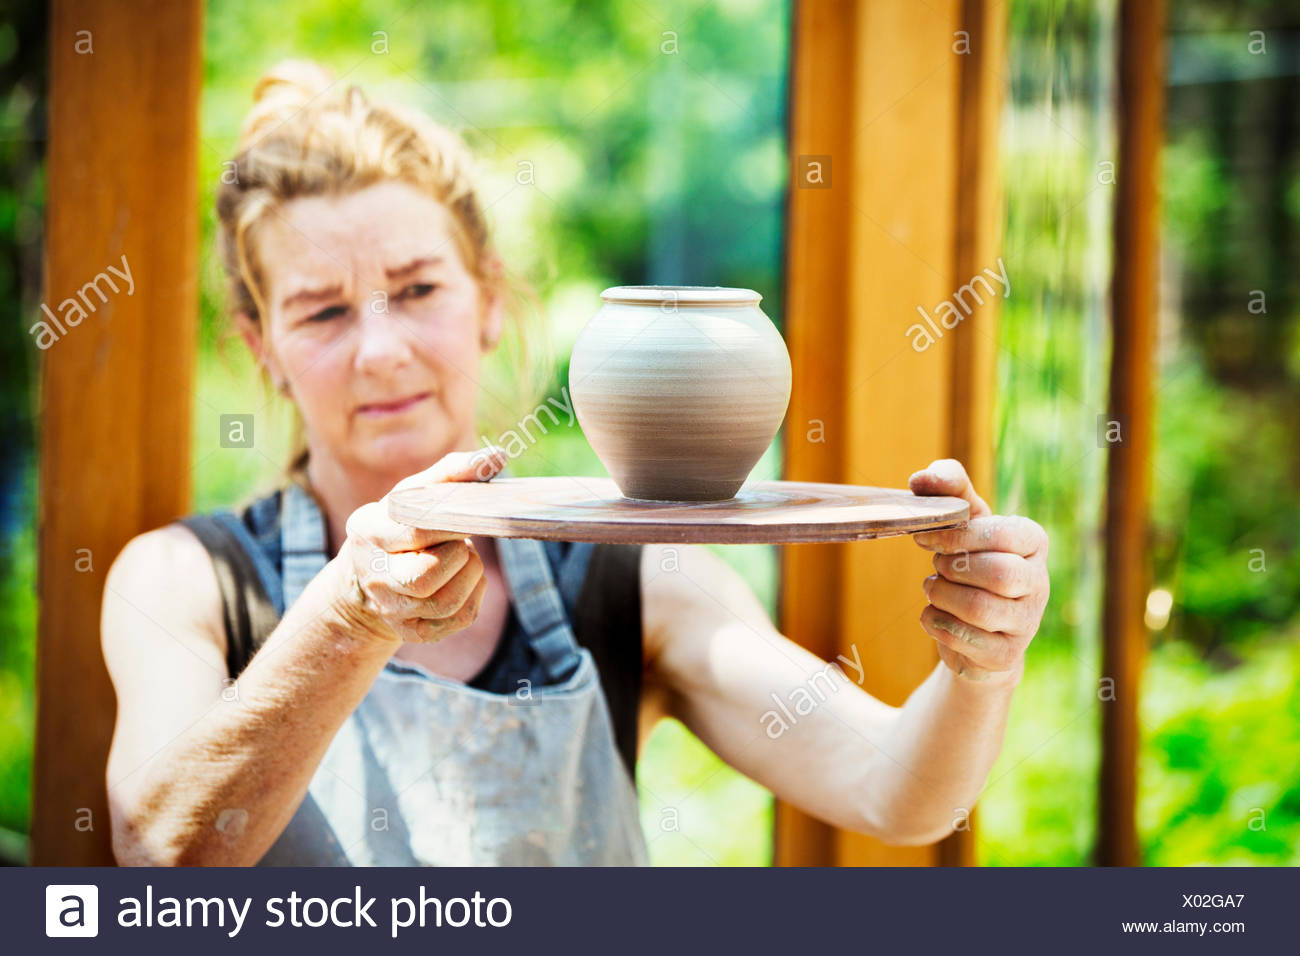 A potter examining a hand thrown pot, wet clay slip, rounded vase with tapering sides. - Stock Image